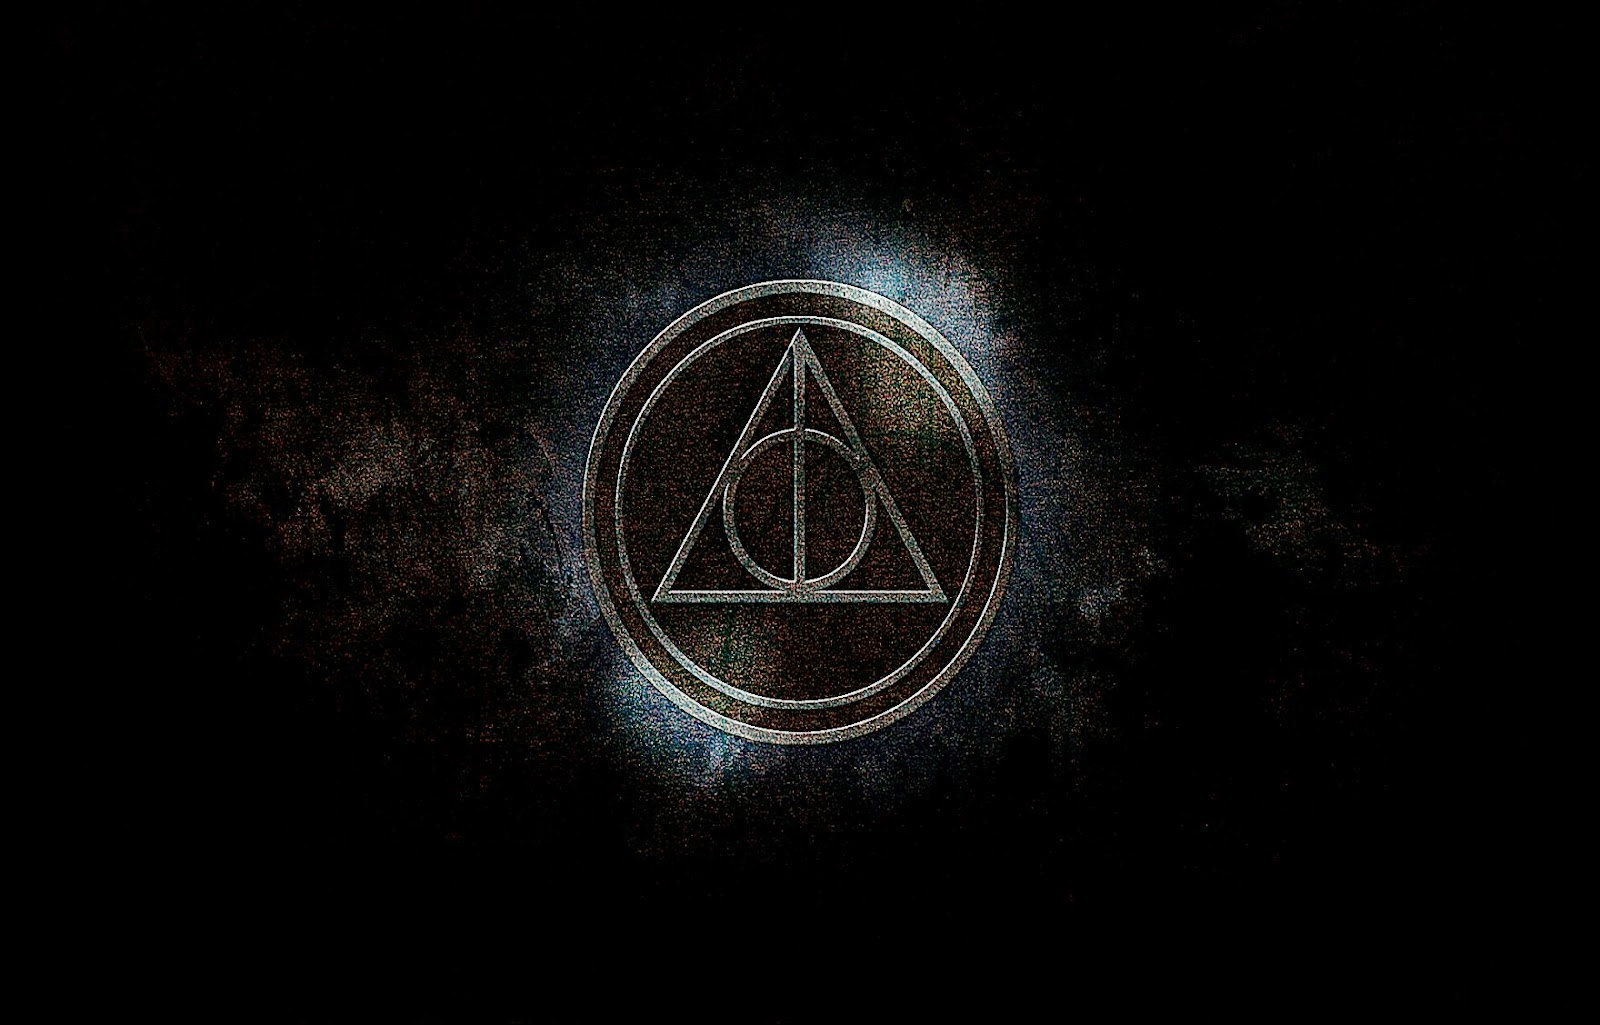 Harry Potter Deathly Hallows Wallpaper by MrStonesley on DeviantArt